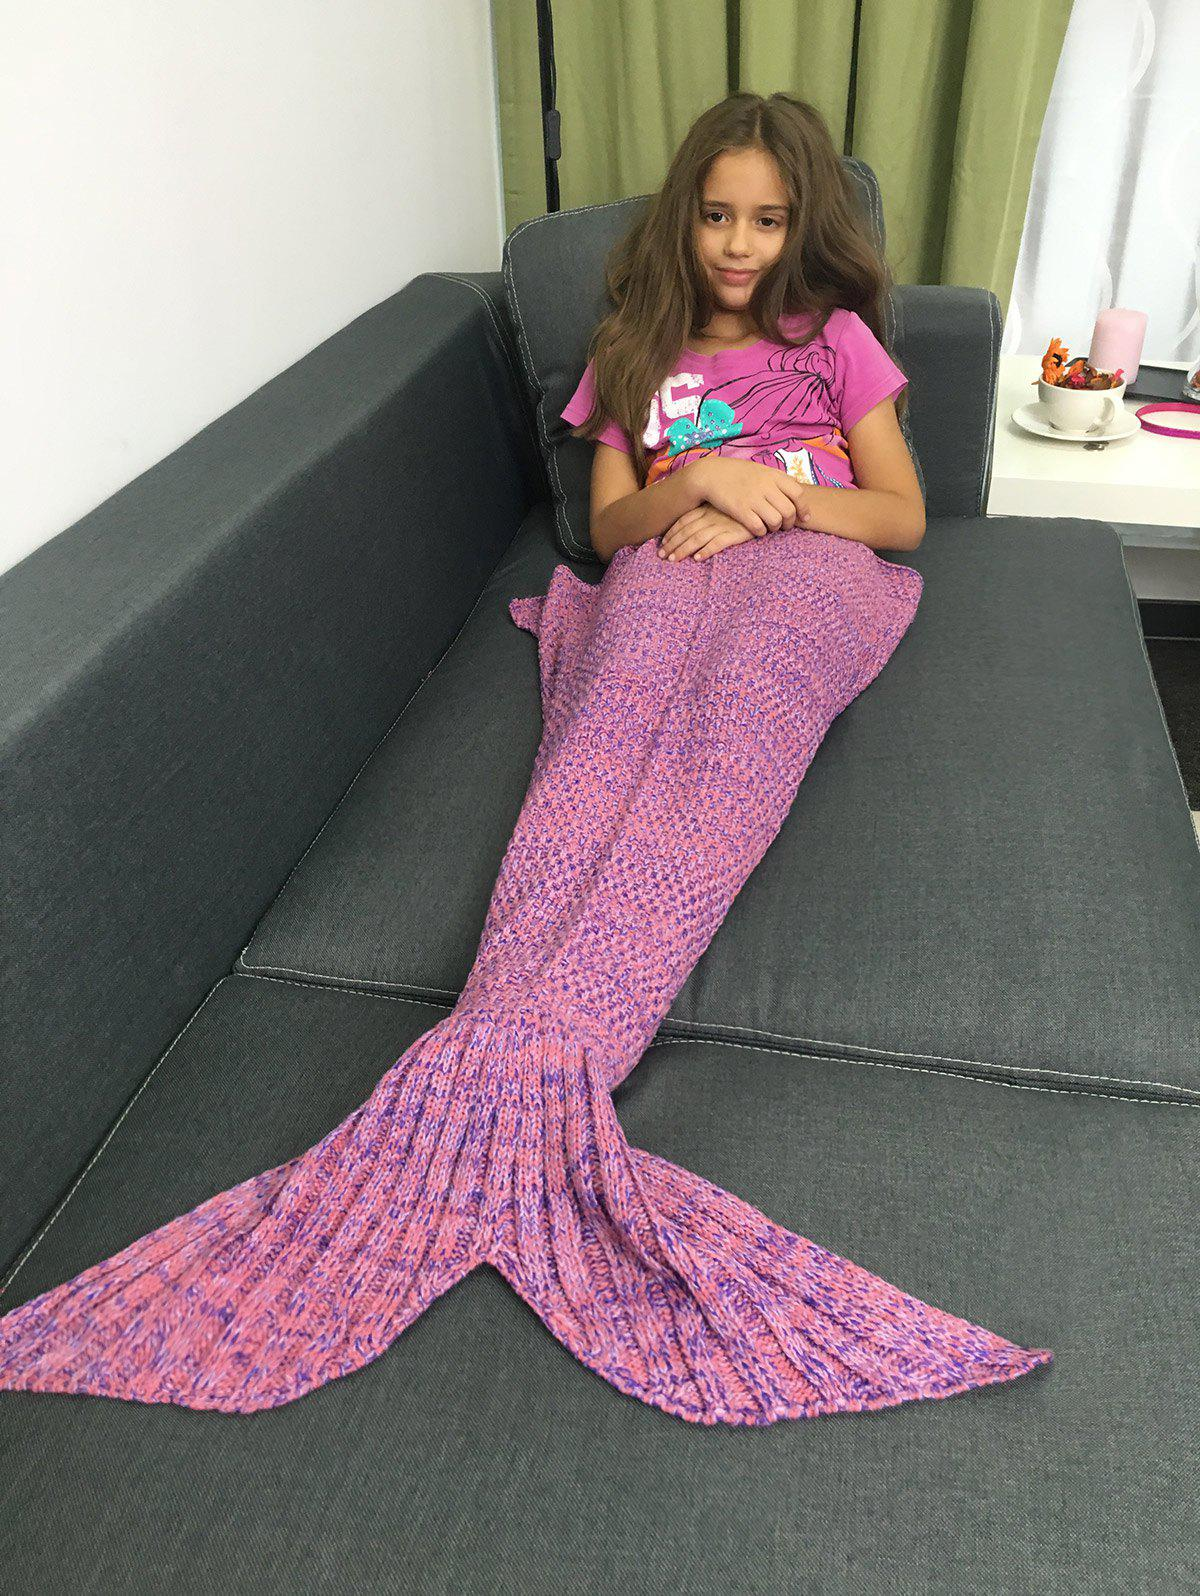 Online Stylish Yarn Knitted Sleeping Bags Mermaid Tail Shape Blanket